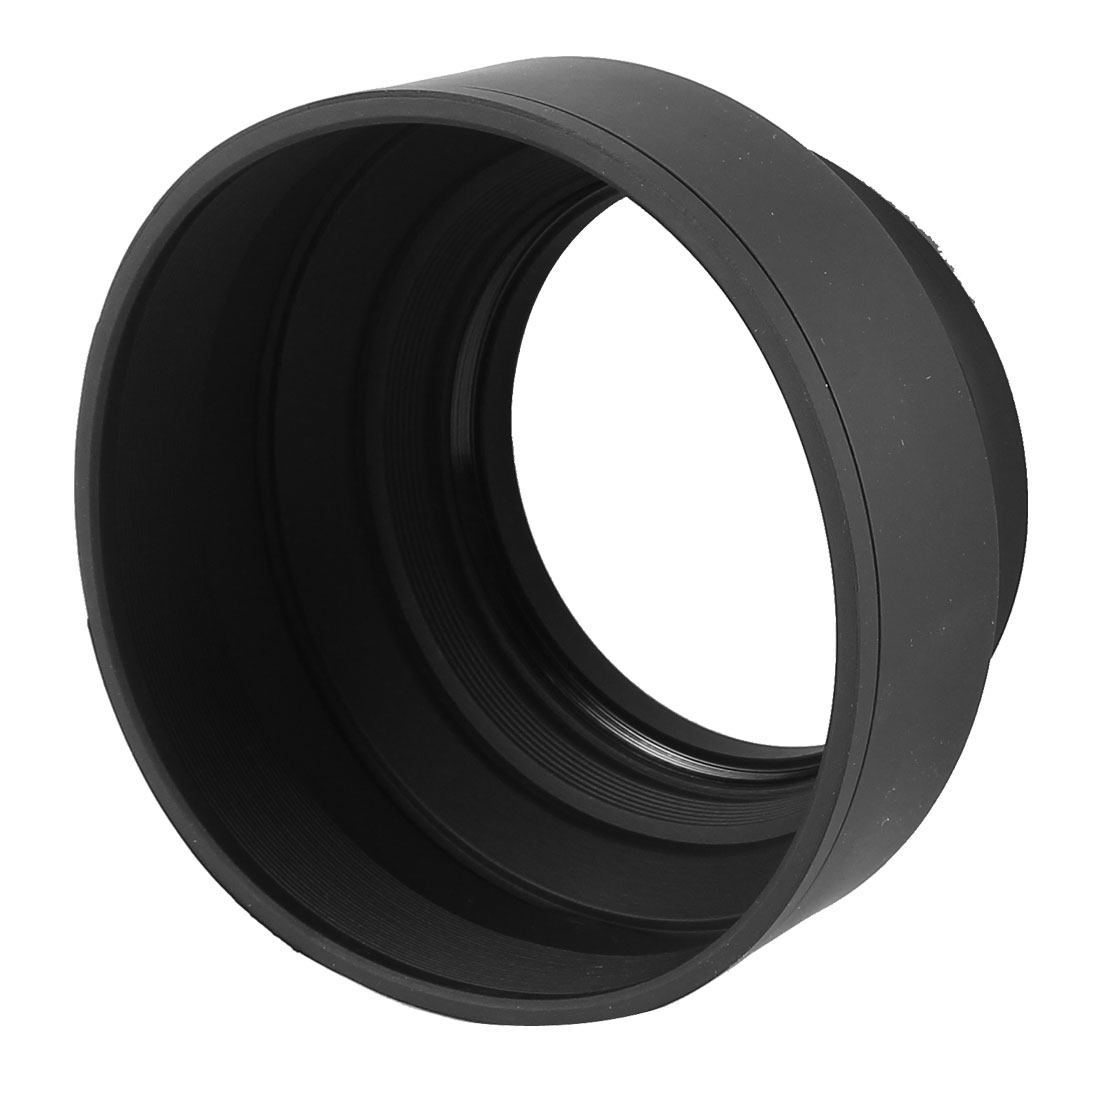 Foldable 3 Way 73m Screw-in Mount Soft Rubber Lens Hood for SLR Digital Camera